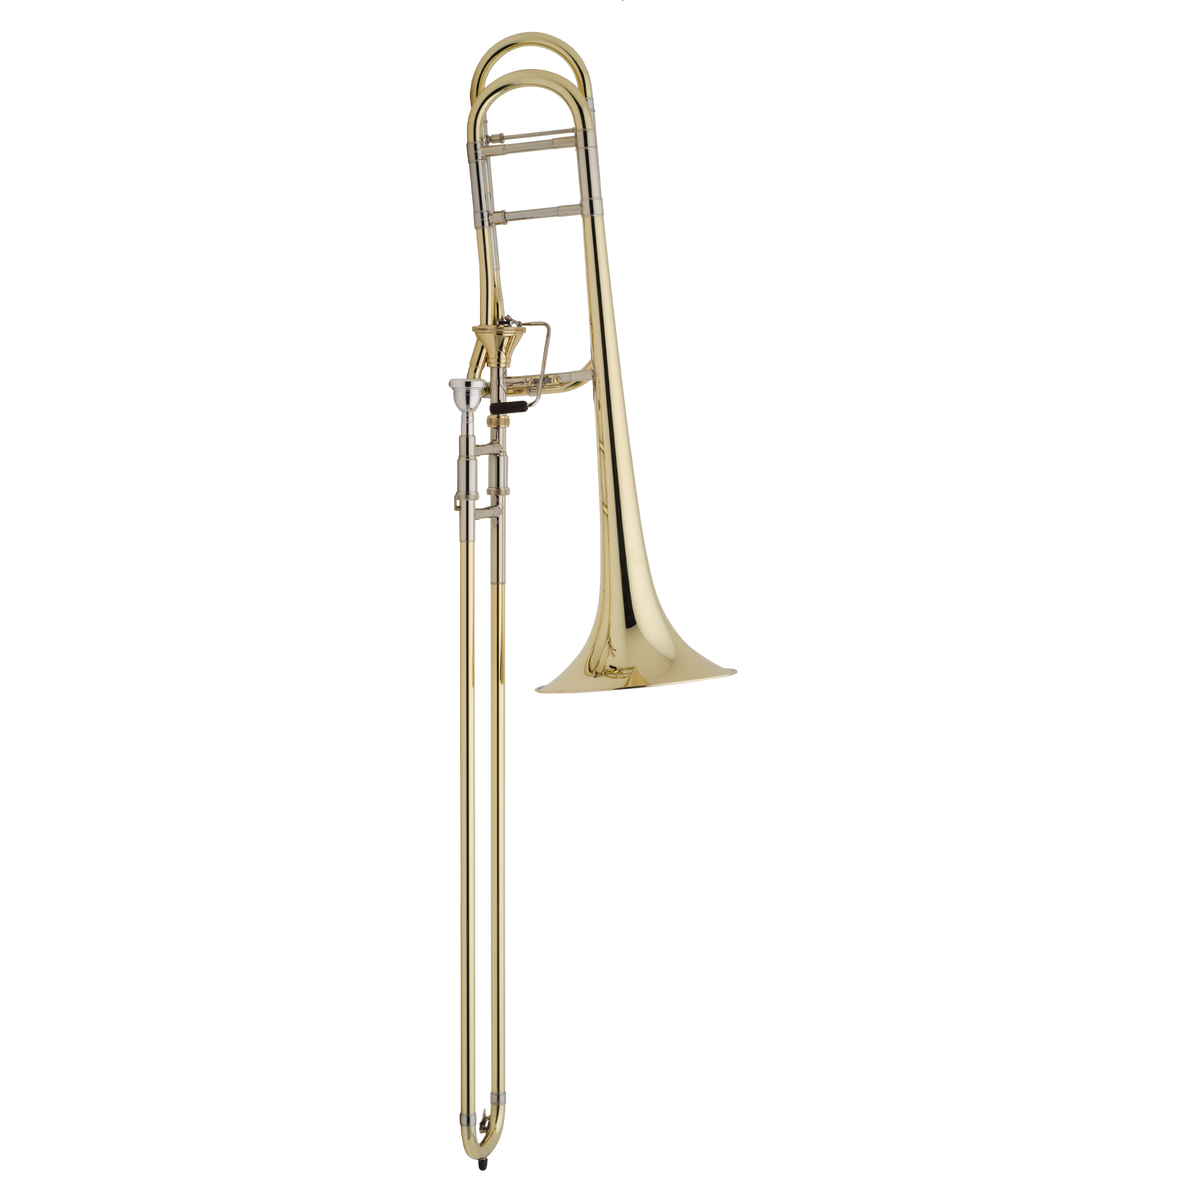 Bach - Model 42AF Stradivarius - Bb/F Tenor Trombone (with Infinity Axial Flow Valve)-Trombone-Bach-Music Elements